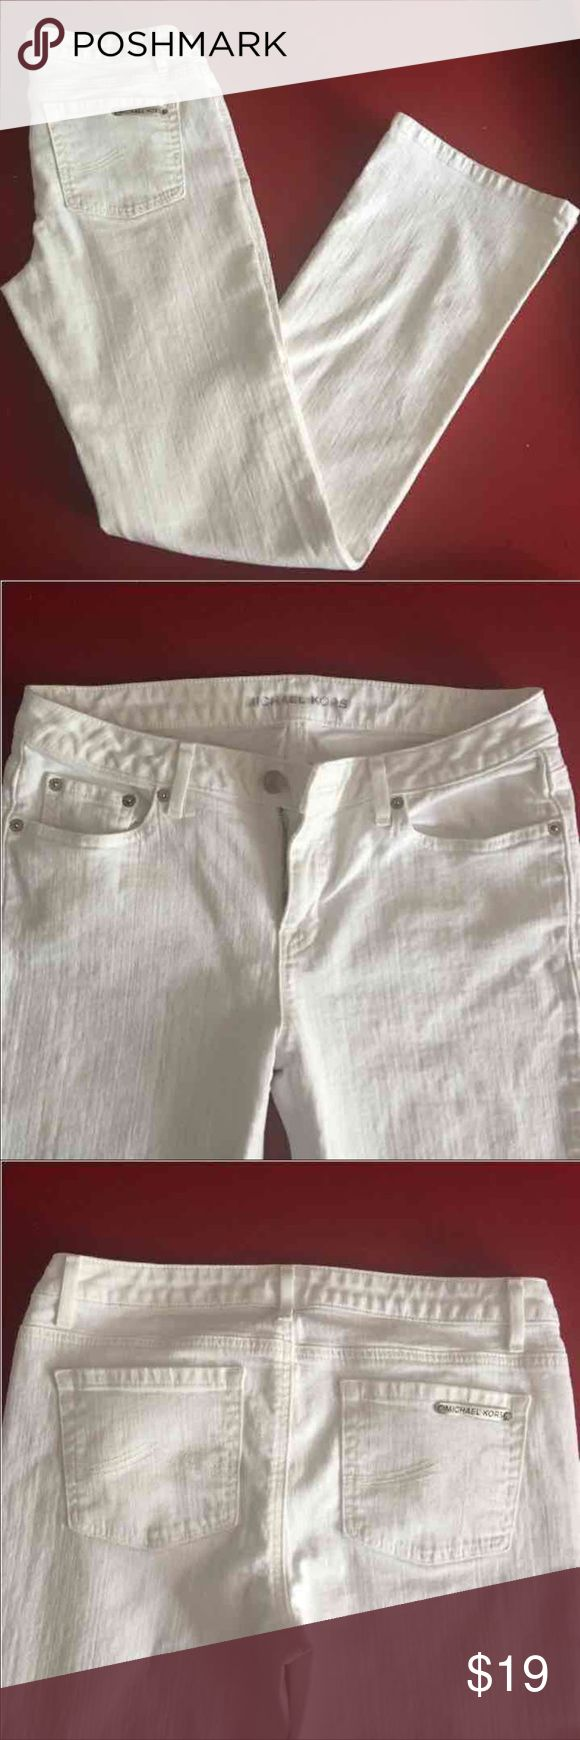 """Michael Kors jeans Michael Kors 'Sausalito' bootcut white denim jeans, sz 8, low rise, inseam 32"""", waist band circumference 30"""", worn twice, retail $79.95 from Macy's  Style # MS29073TK6 KORS Michael Kors Jeans Boot Cut"""